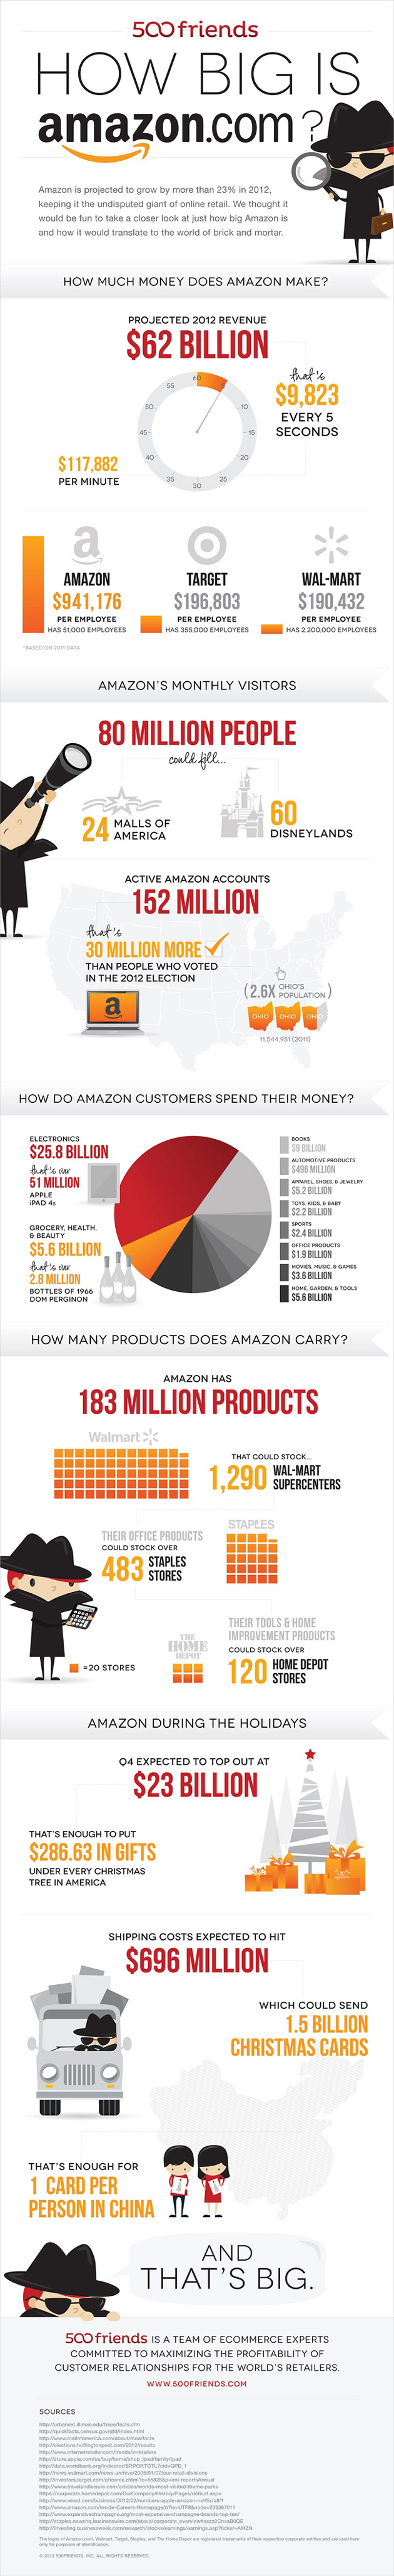 2. Just how big is Amazon.com